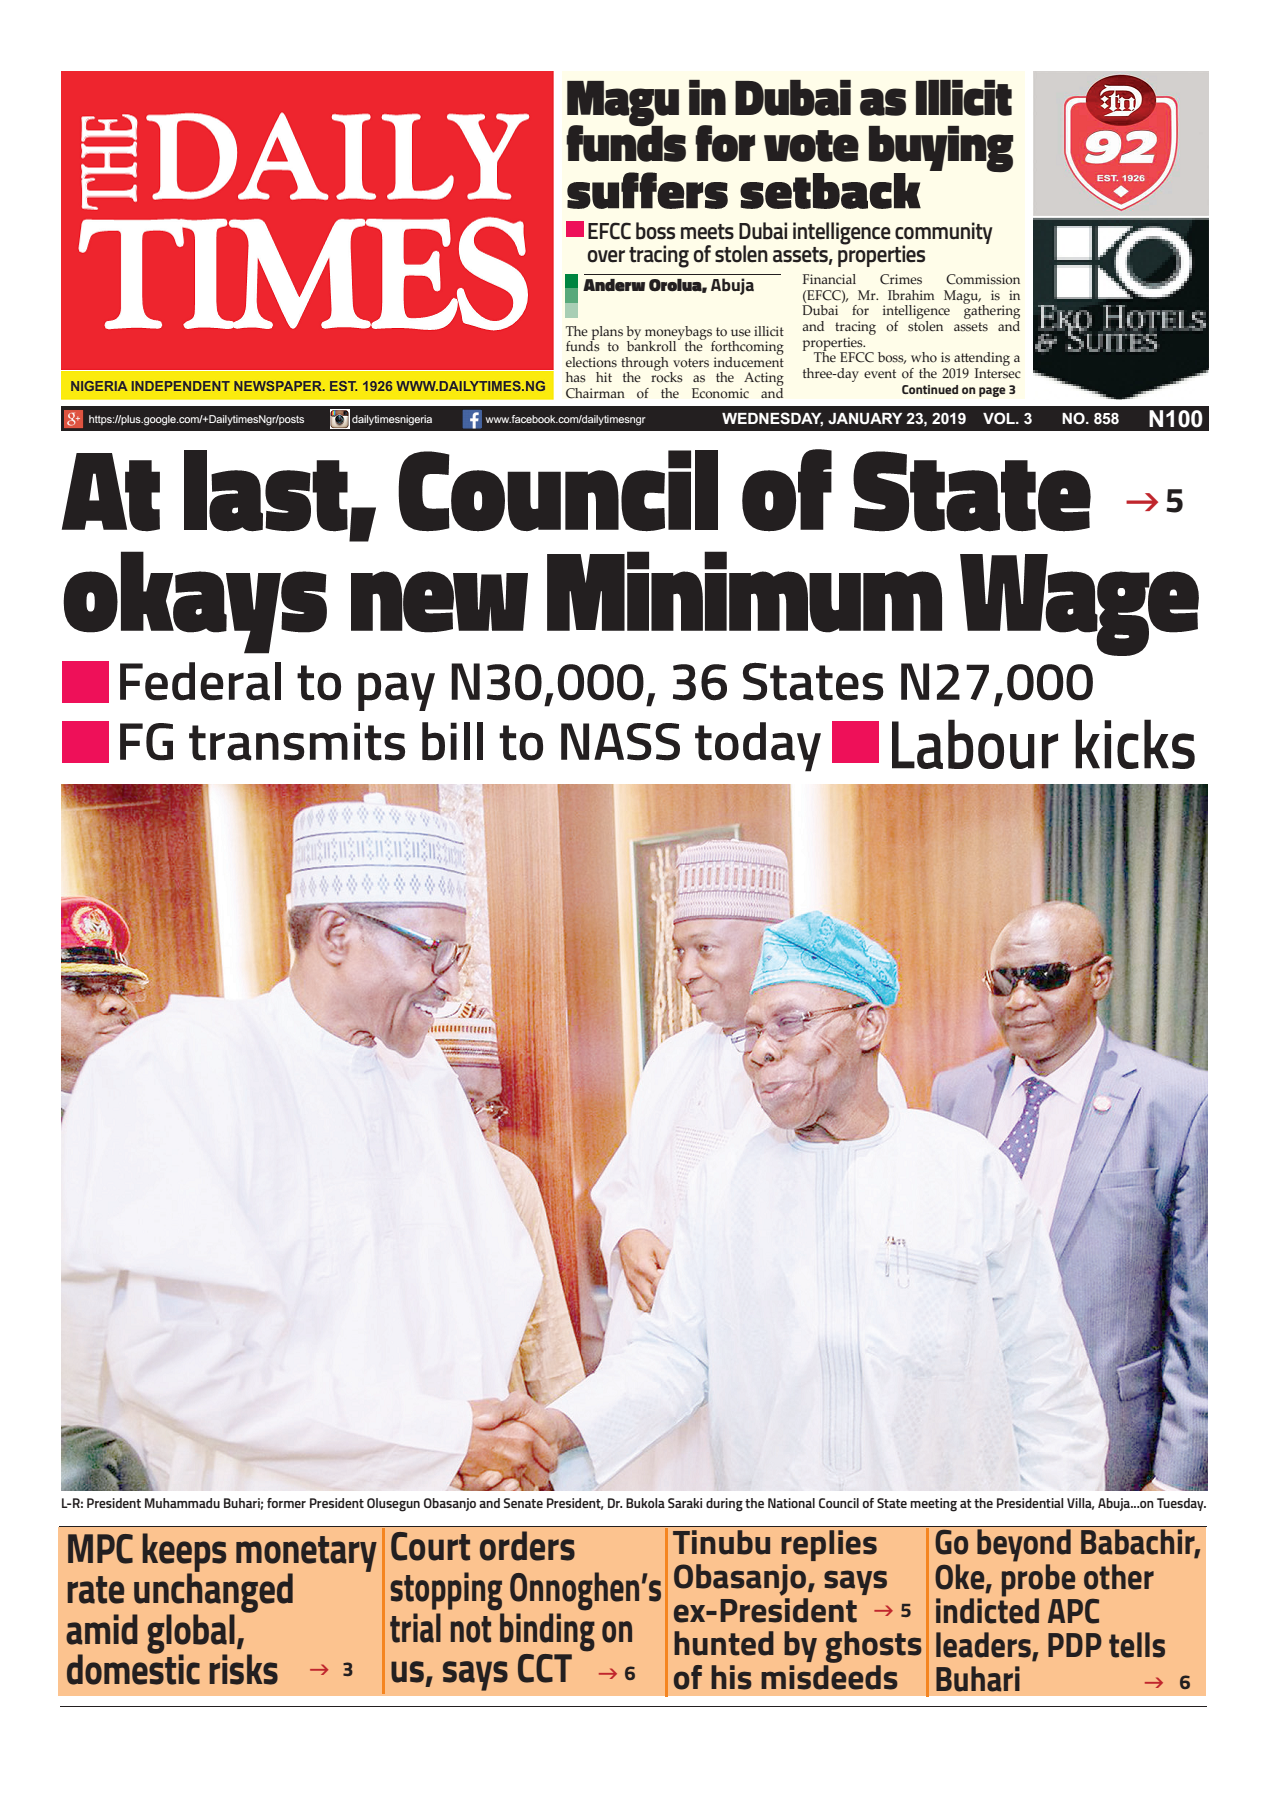 Daily Times Newspaper, Wednesday, January 23, 2018